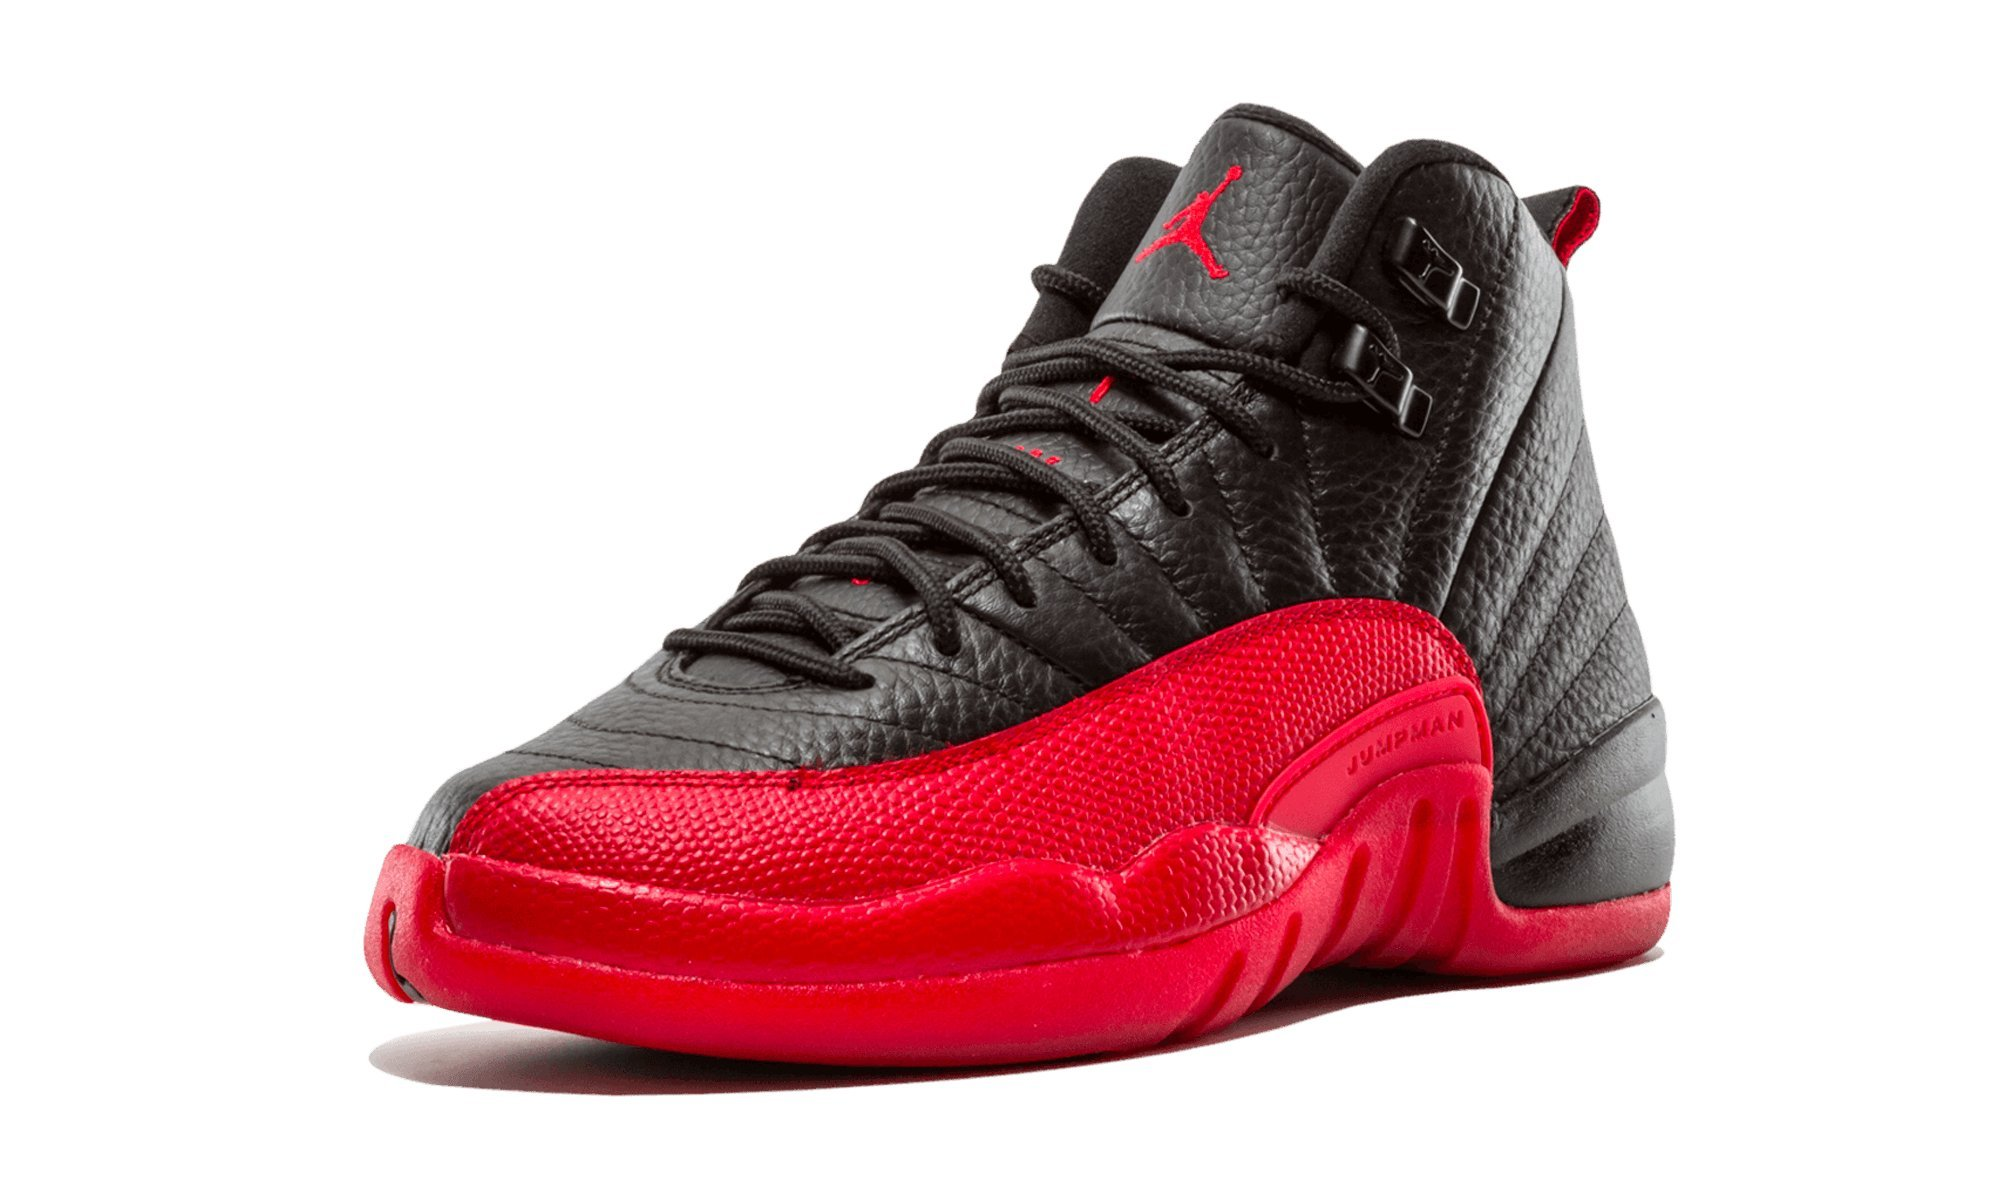 4655abf20854bd Galleon - Air Jordan 12 Retro BG - 153265 002